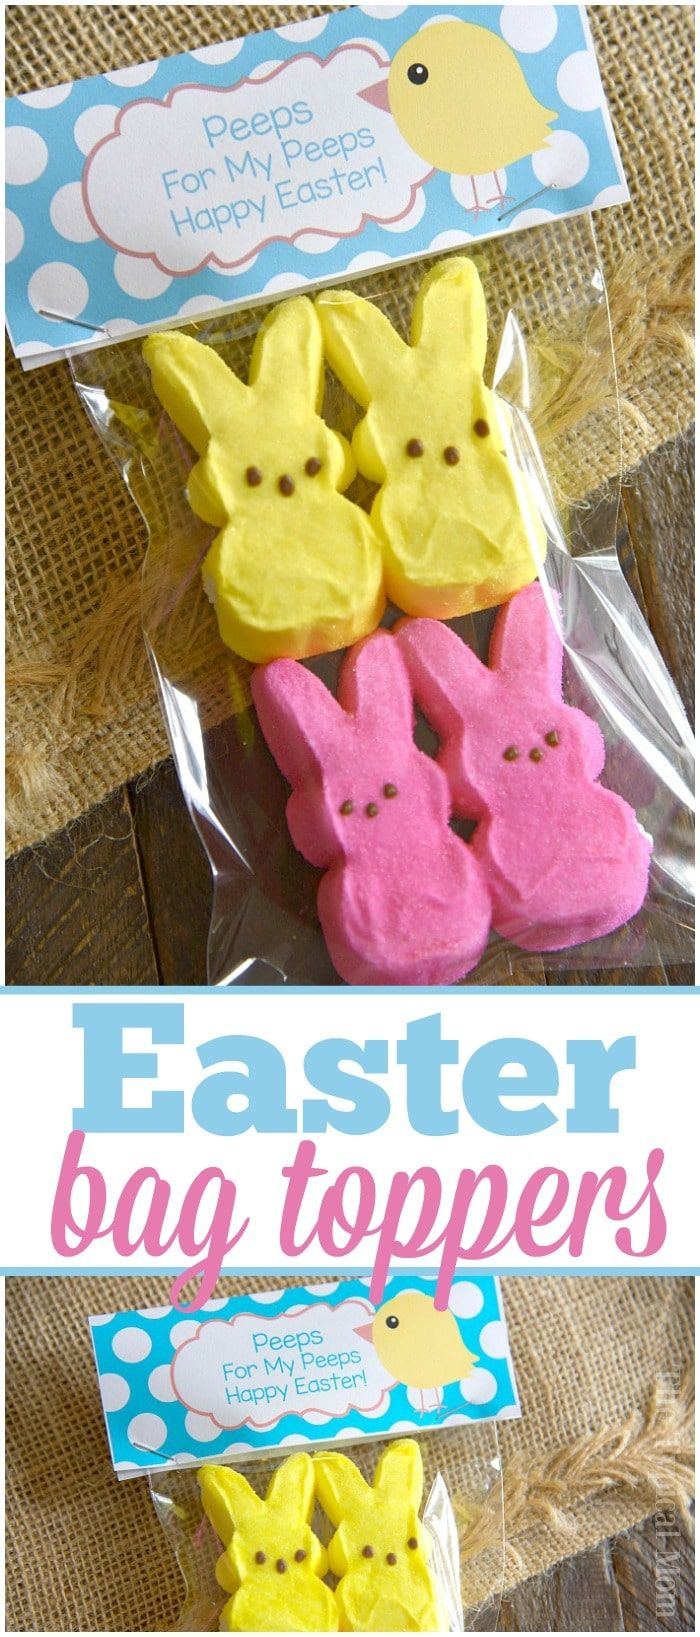 Free Easter Treat Bags And Bag Toppers Printable To Make